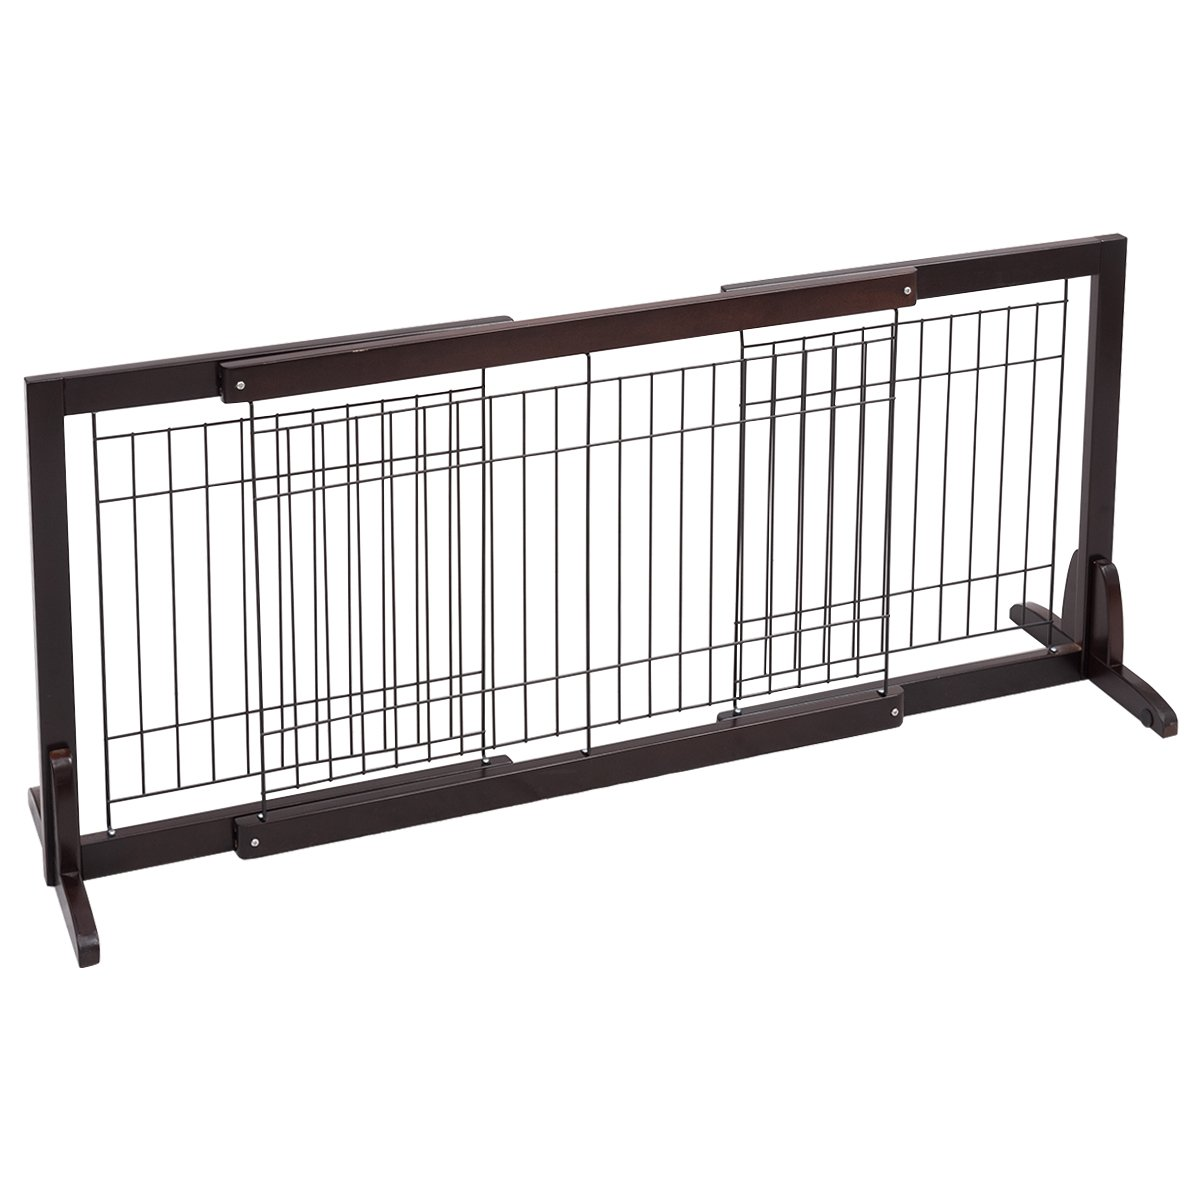 Giantex Free Standing Wood Dog Gate Adjustable Pet Safety Fence Indoor